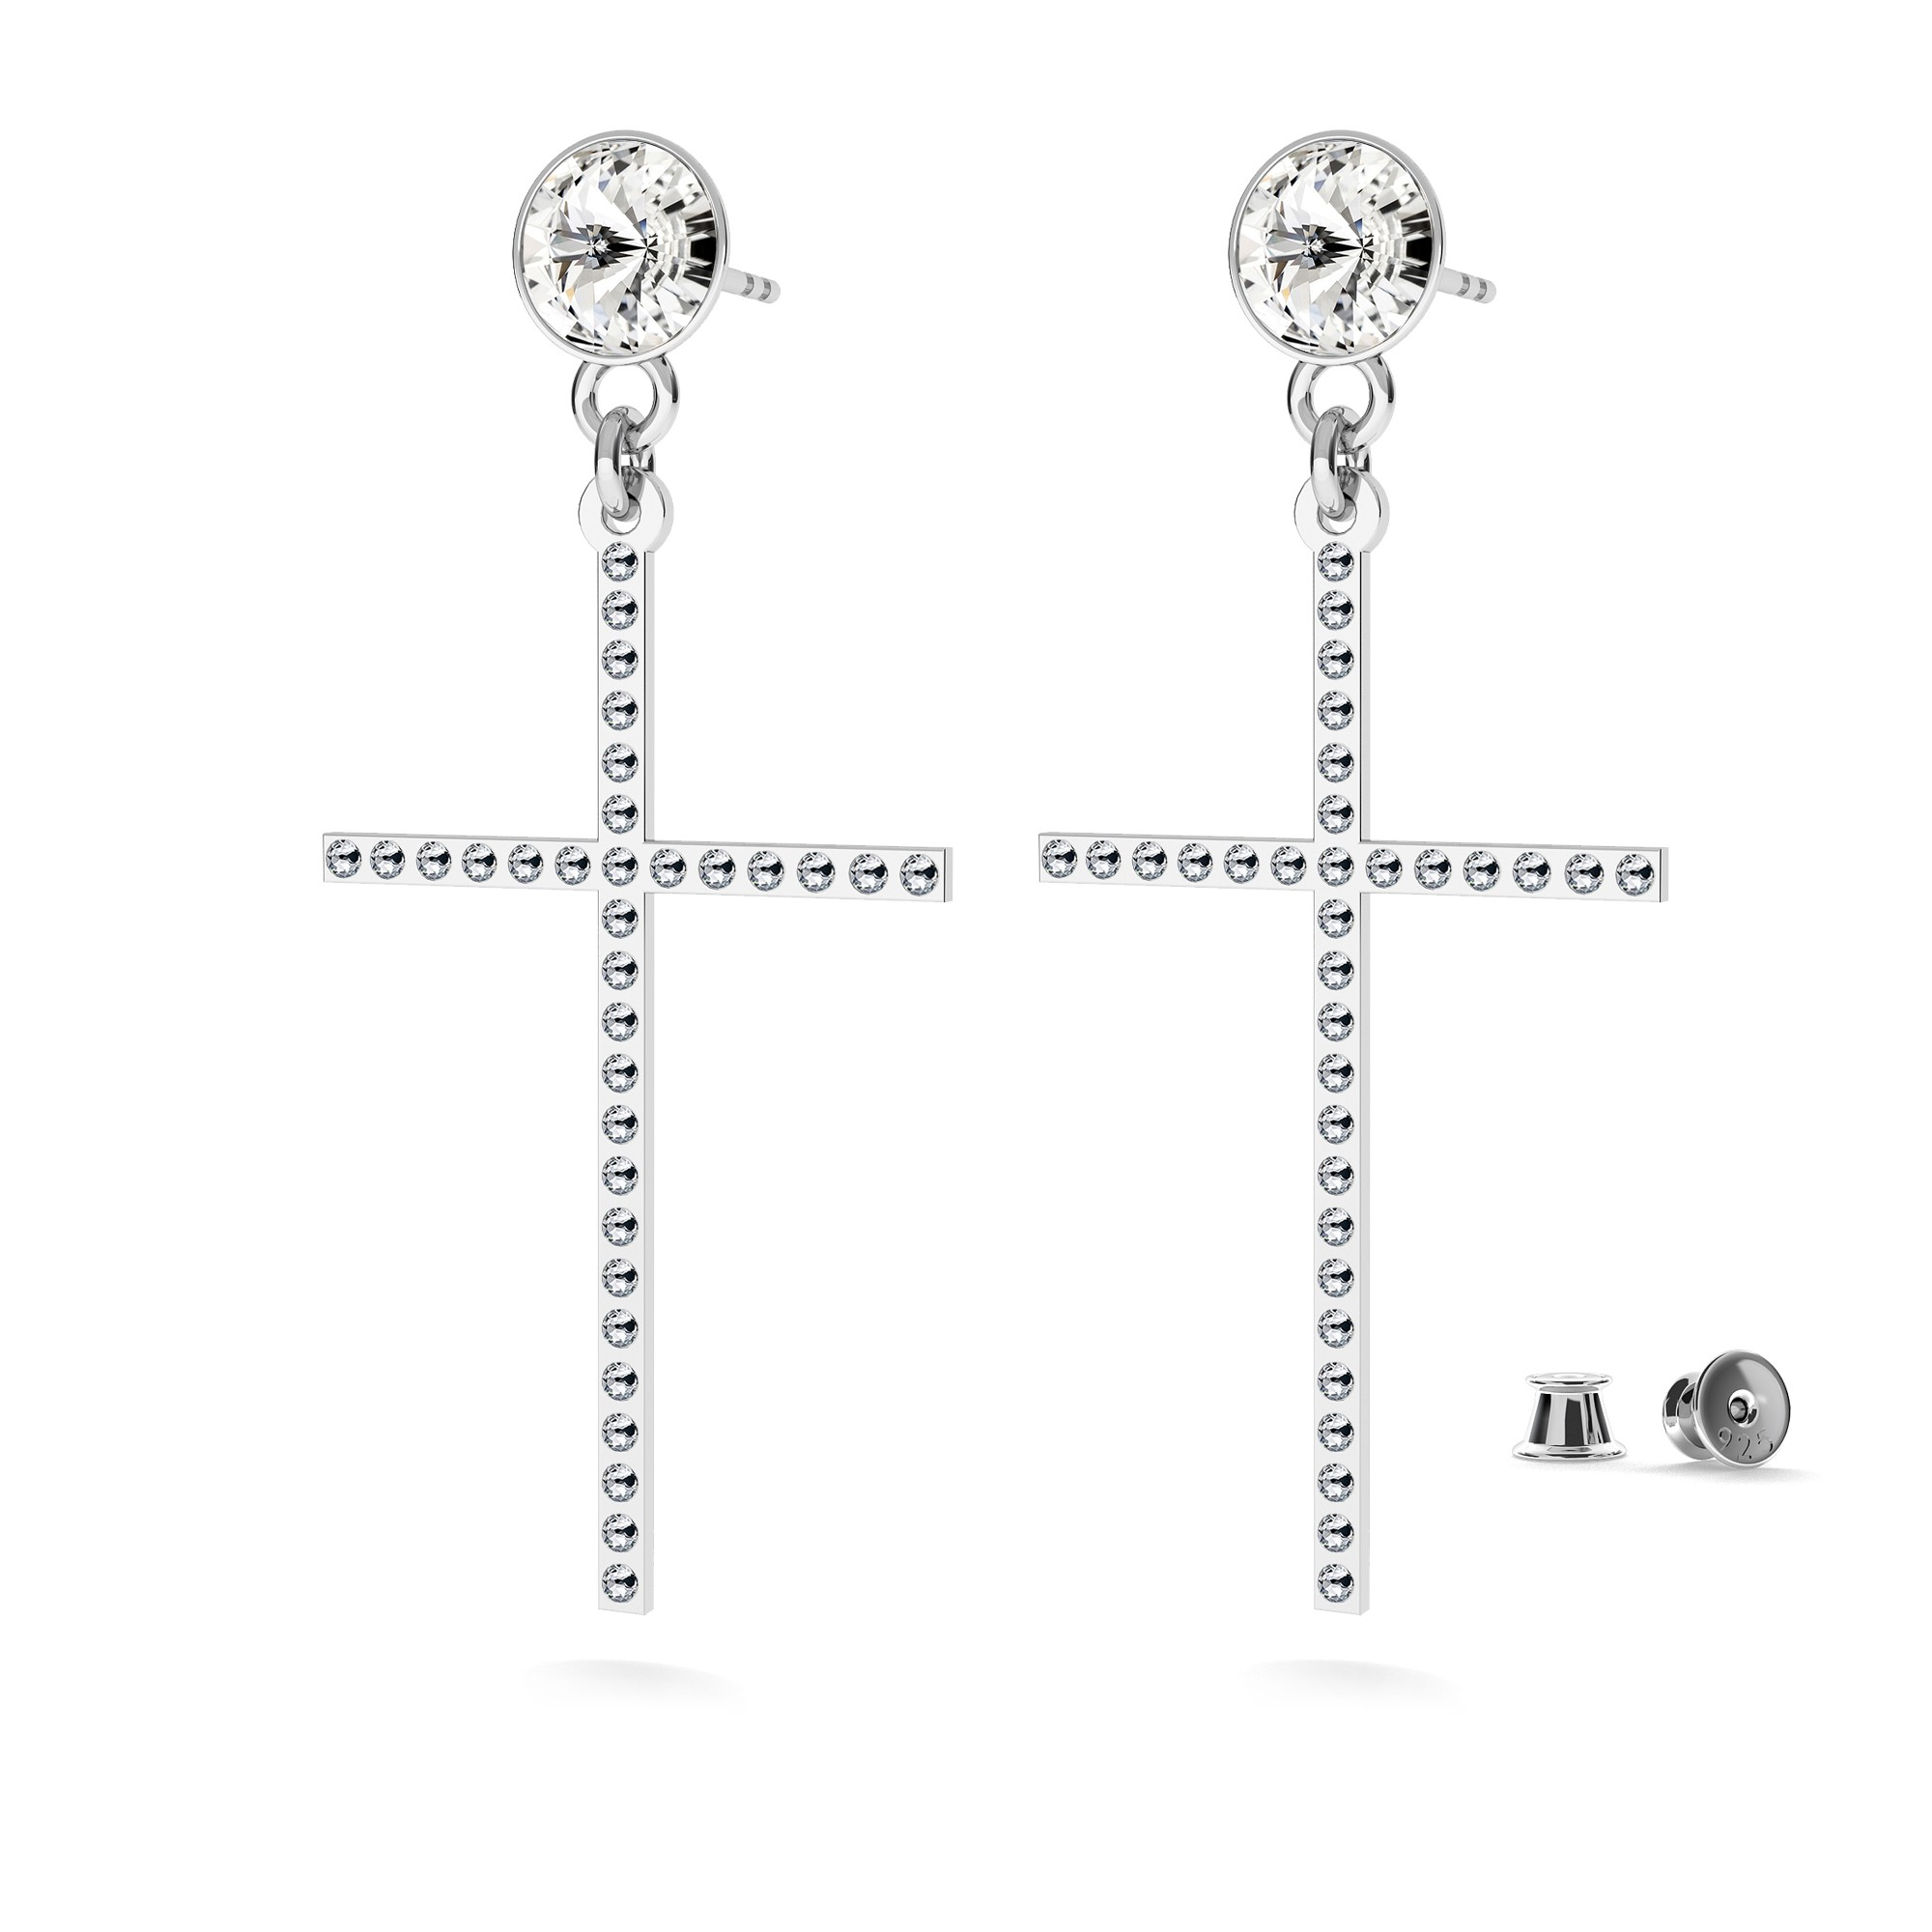 Silver MOON earrings with Swarovski crystals 925